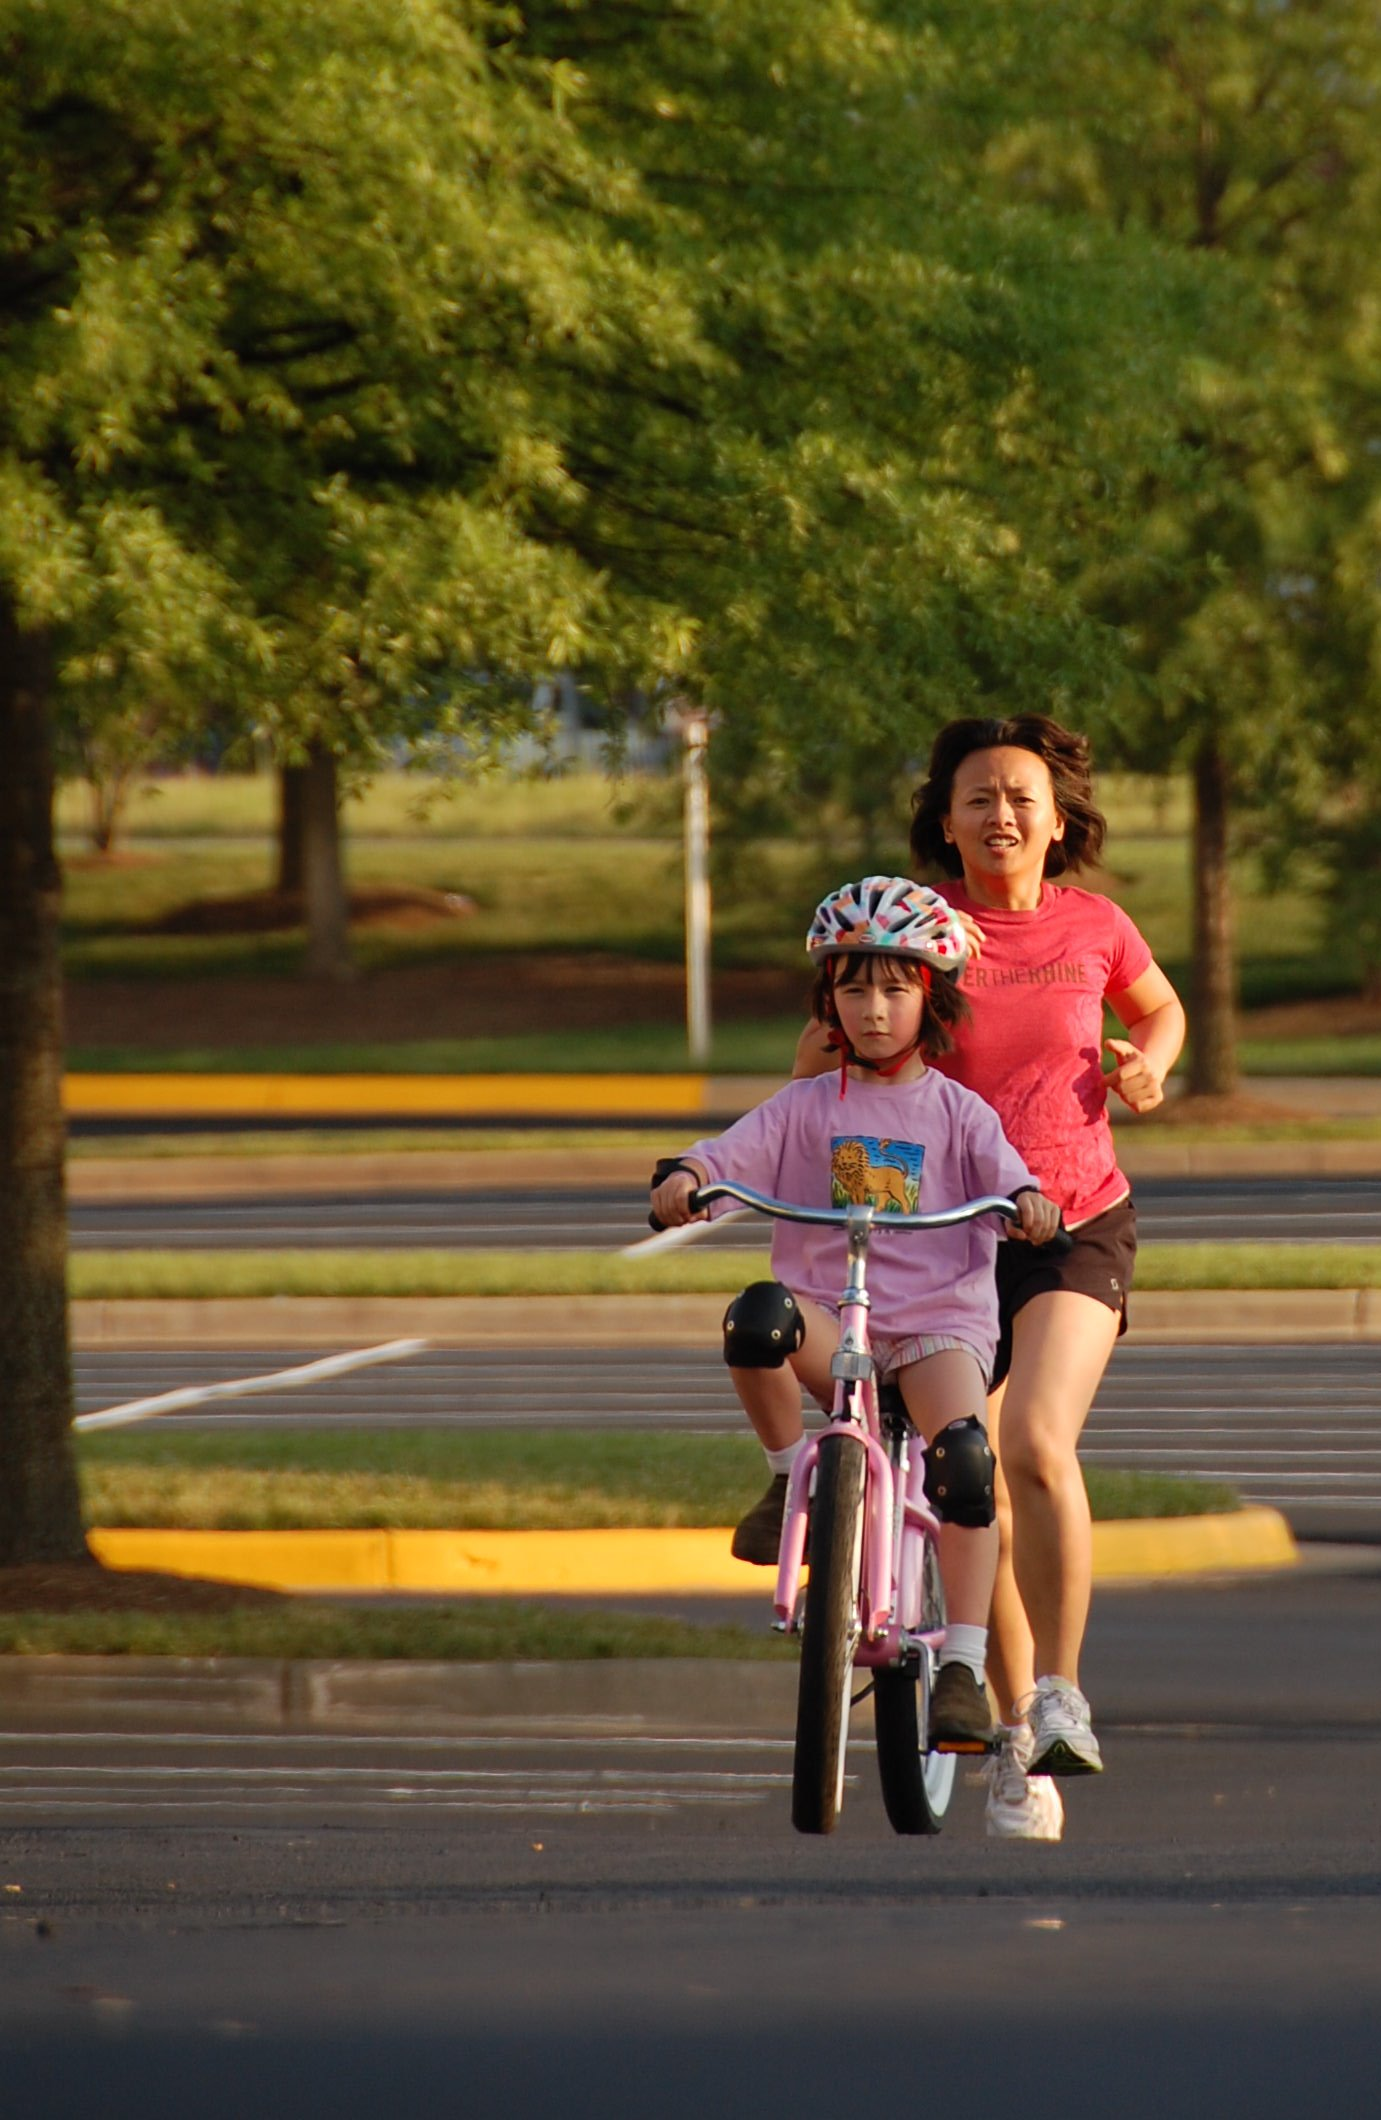 iCan Bike Camp teaches Children with Autism to Successfully ride a Bike